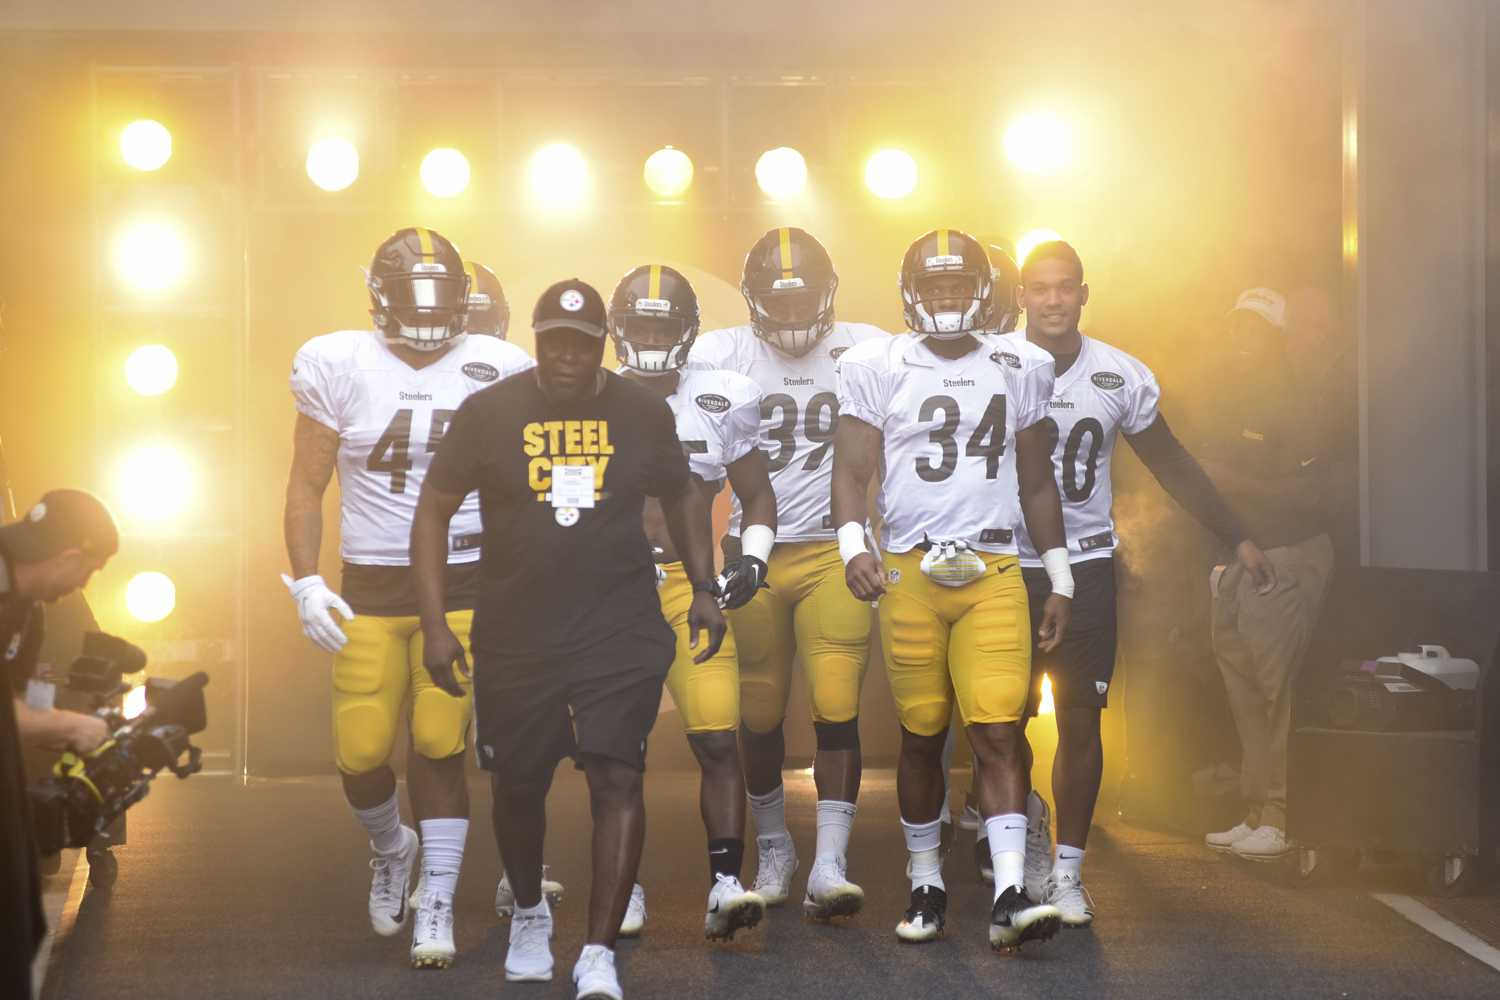 Steelers players walk onto the field during a practice in August. (Photo by Matt Hawley | Staff Photographer)